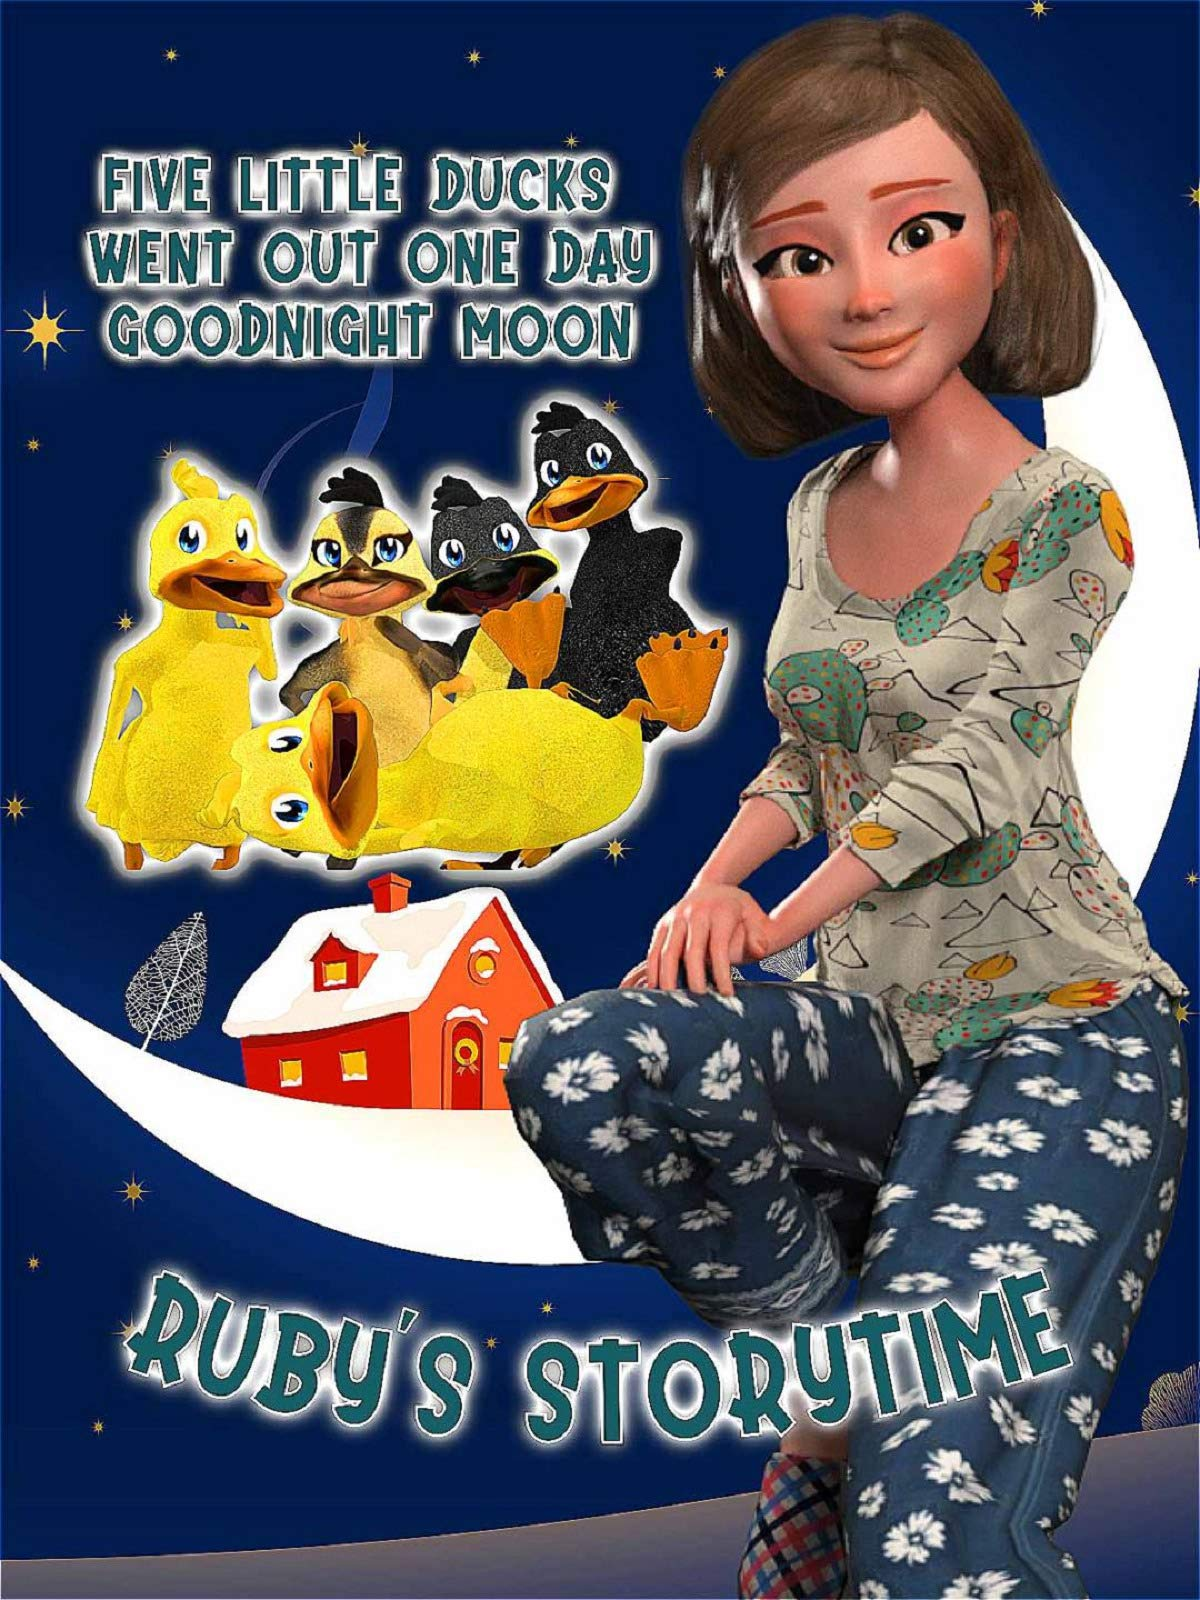 Five Little Ducks Went Out One Day Goodnight Moon, Ruby's Storytime